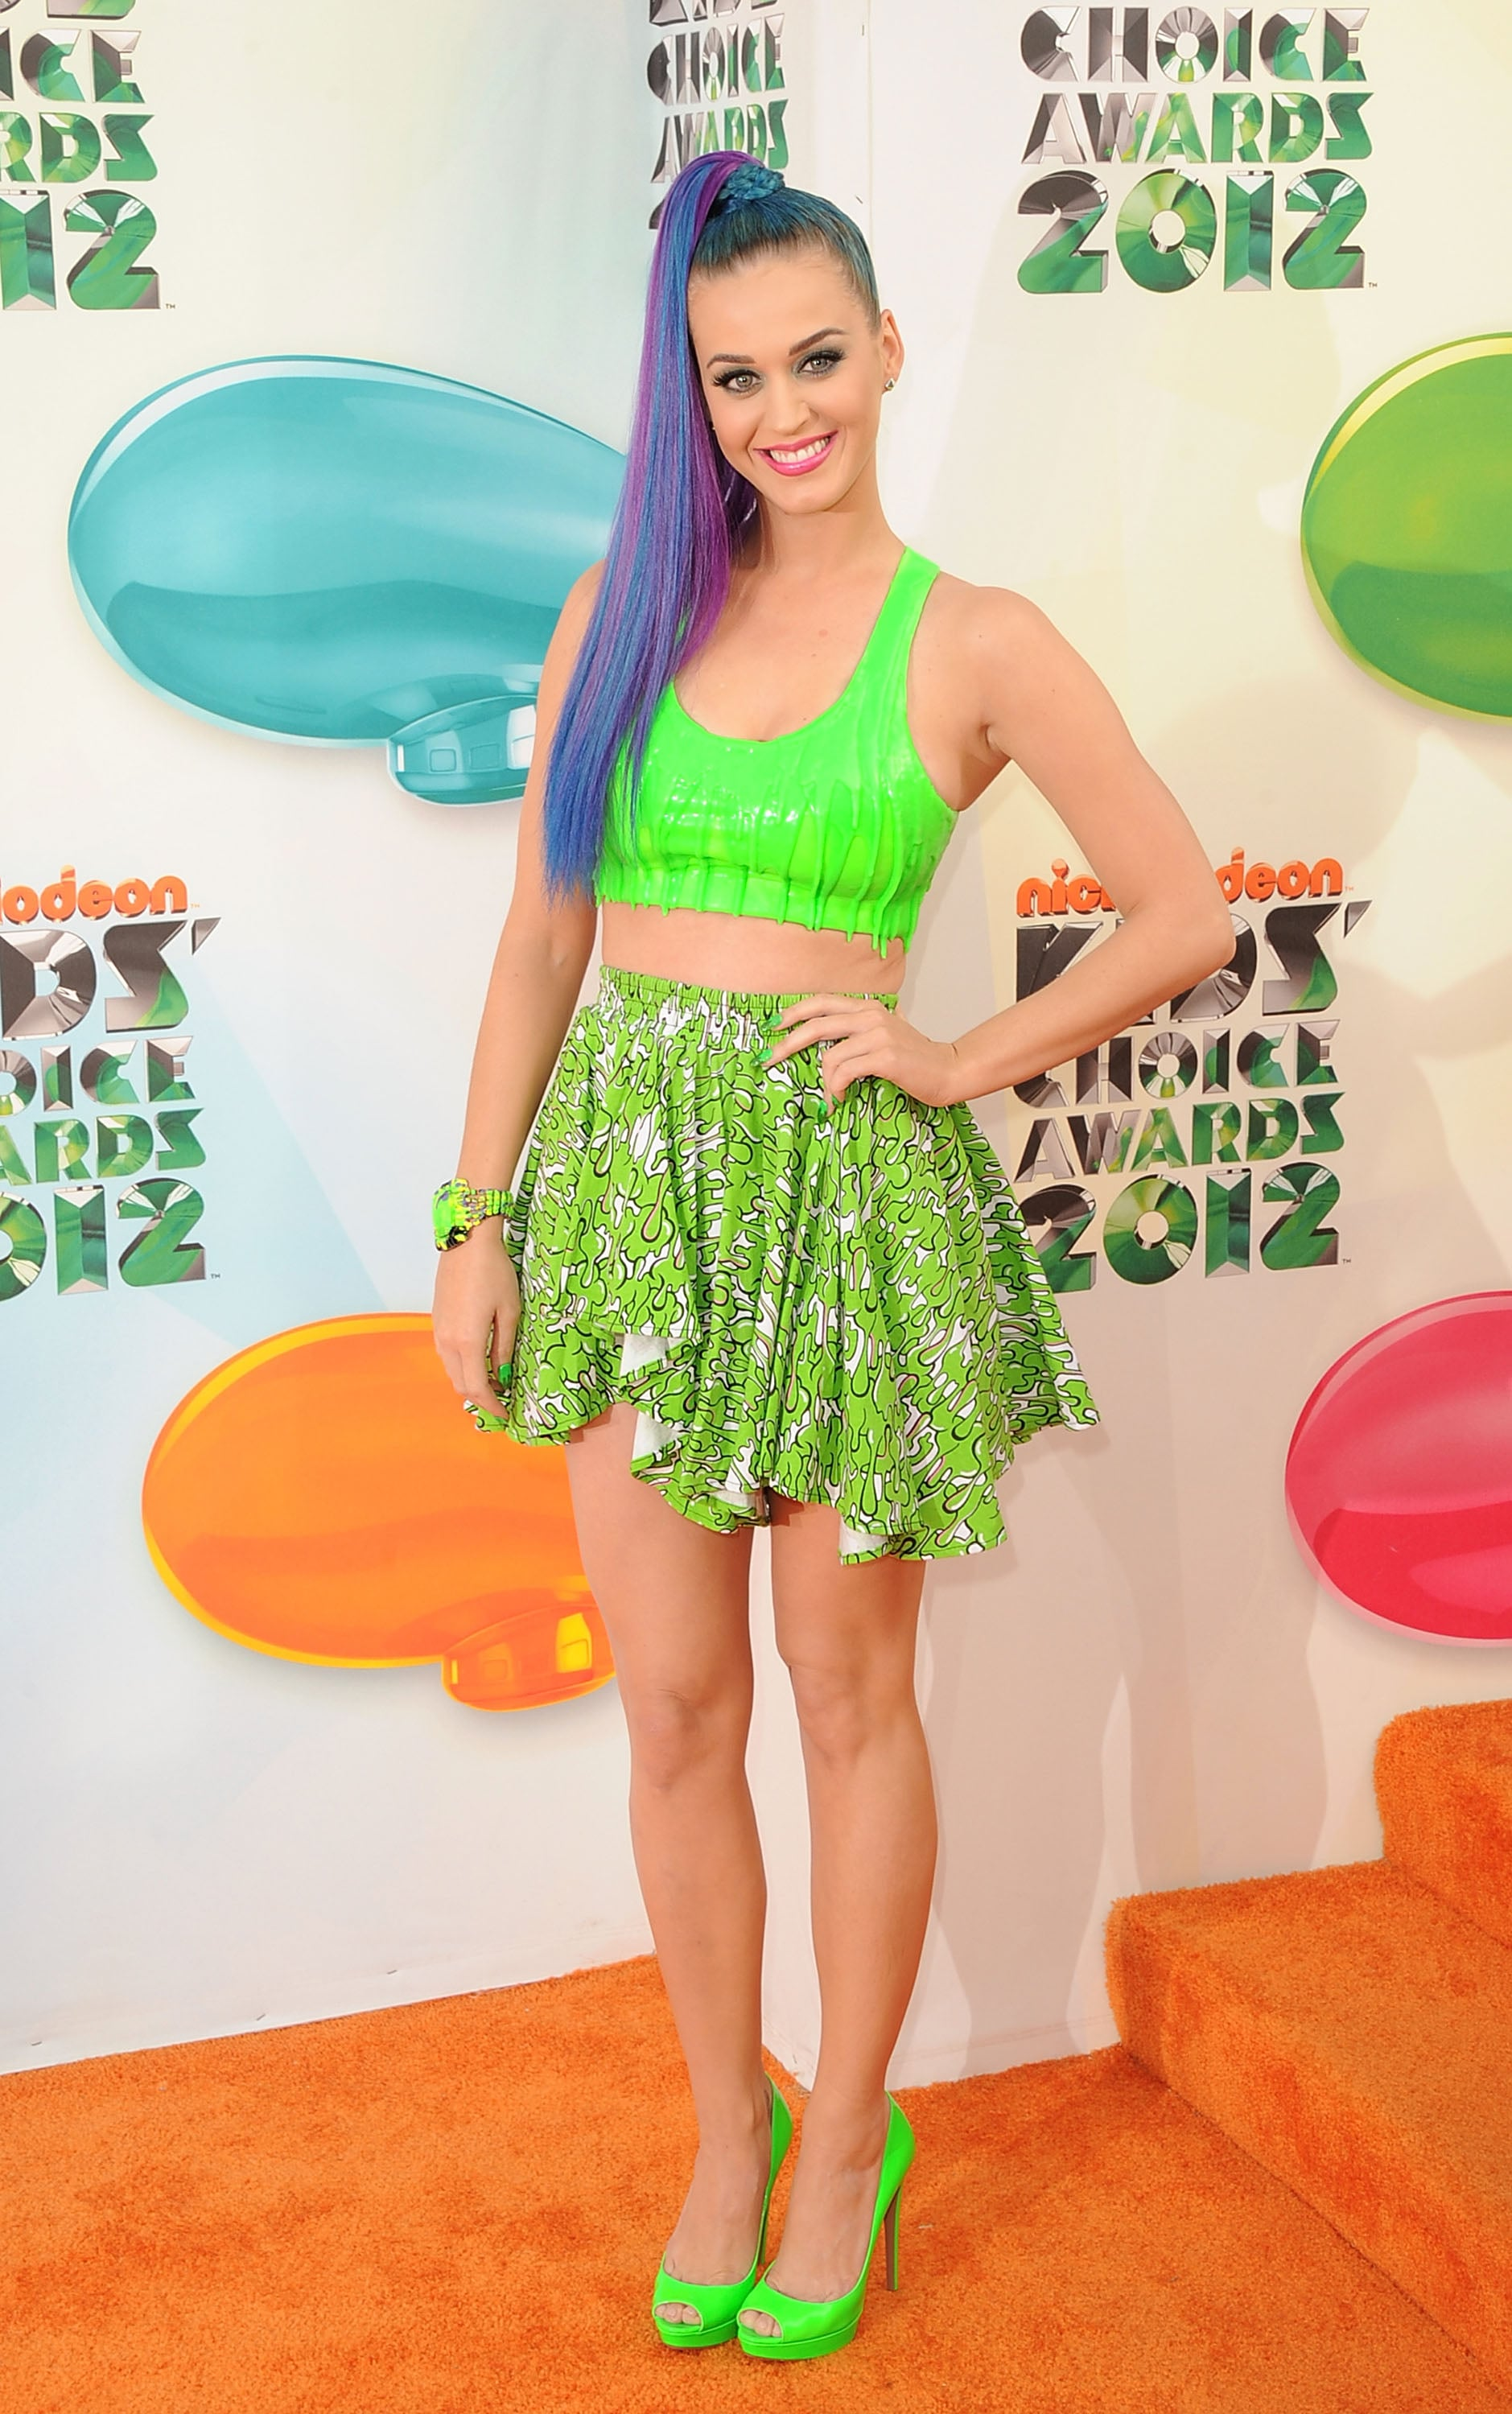 She gave a glimpse of her abs at the Kids' Choice Awards in LA in March 2012.